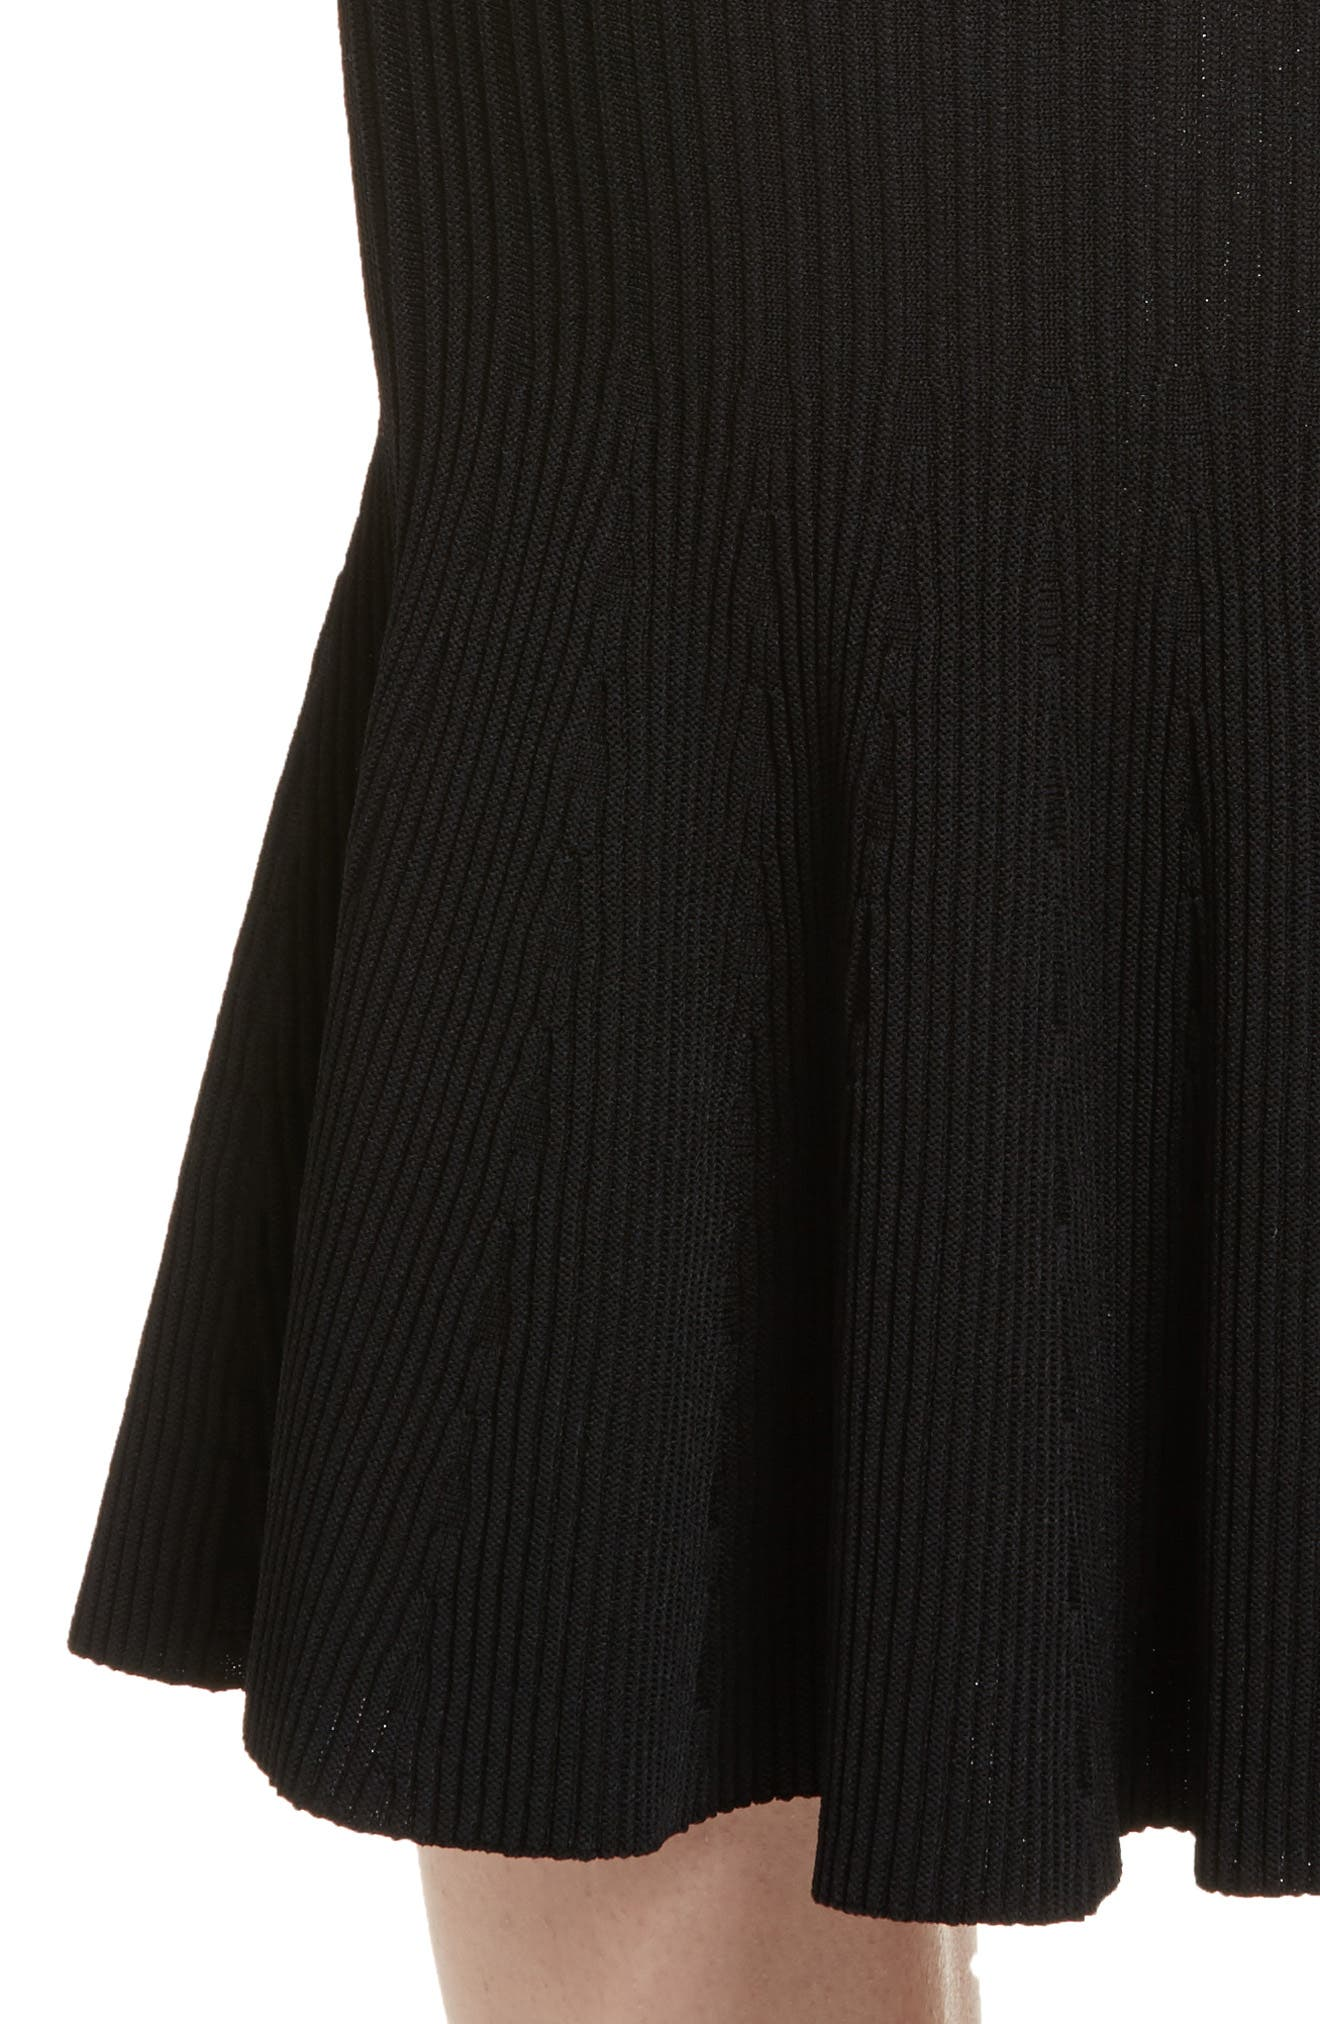 Rib Knit Trumpet Skirt,                             Alternate thumbnail 4, color,                             001